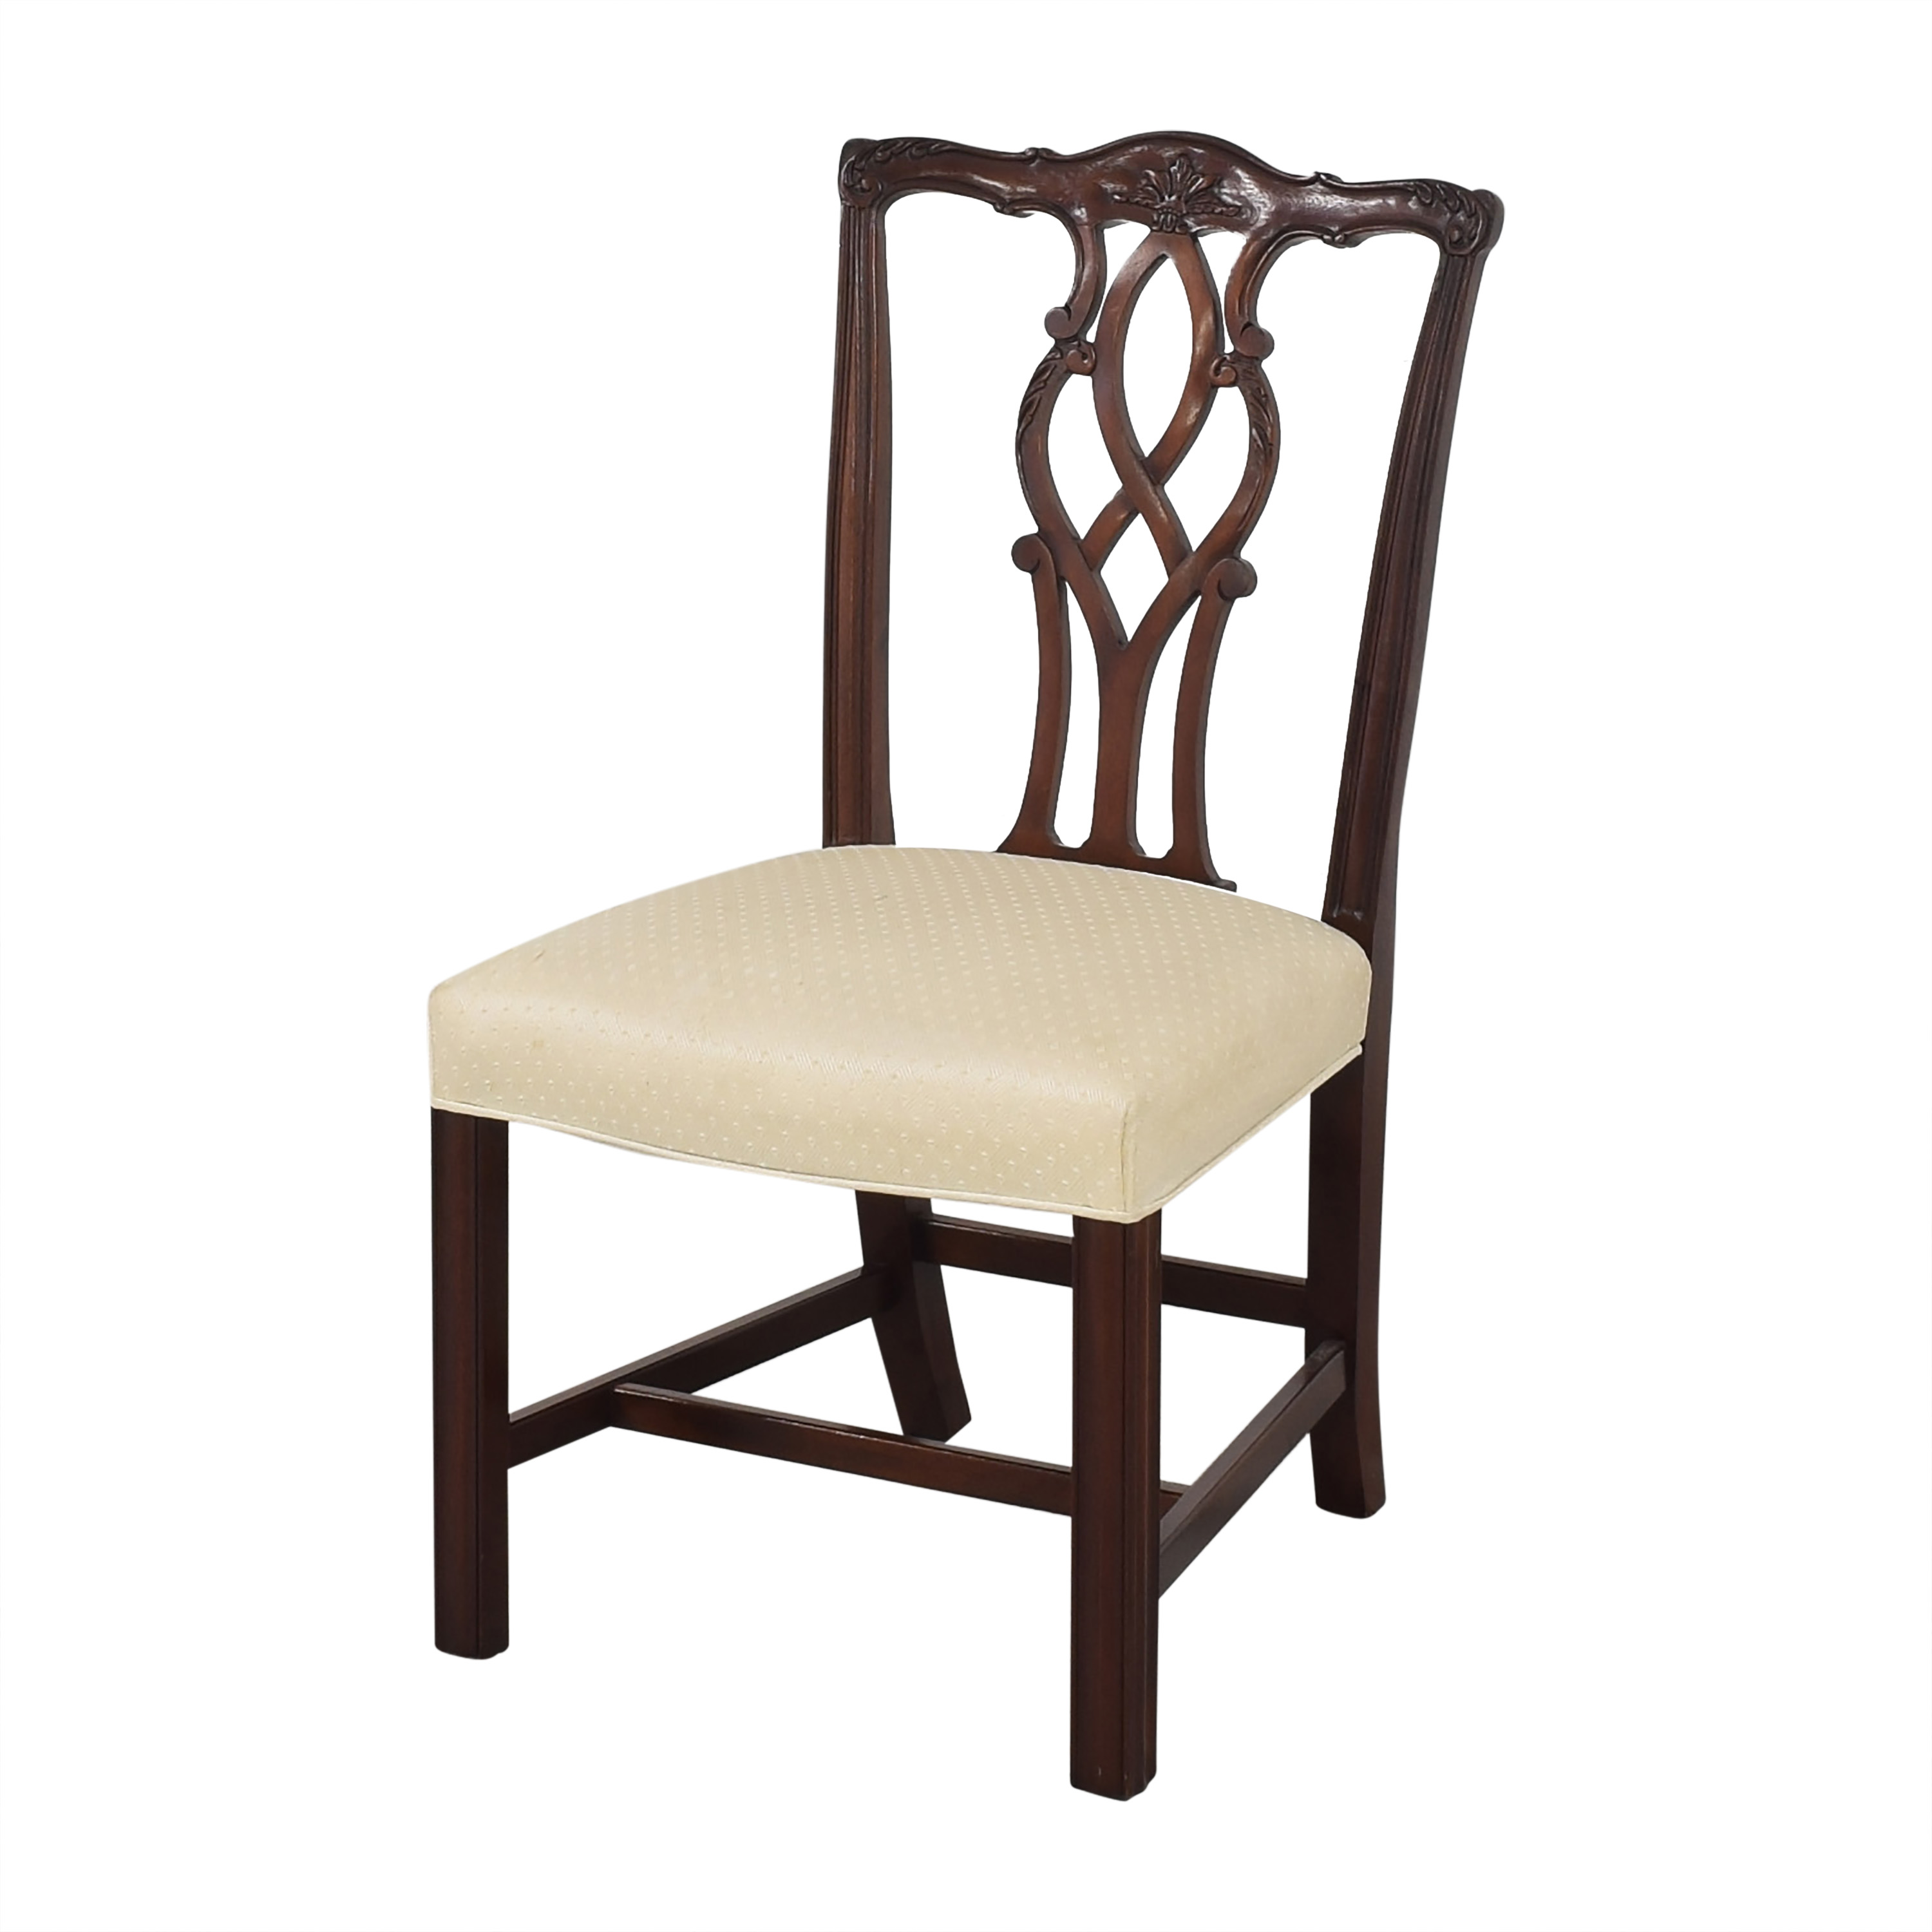 buy Kindel Chippendale Dining Side Chairs Kindel Dining Chairs